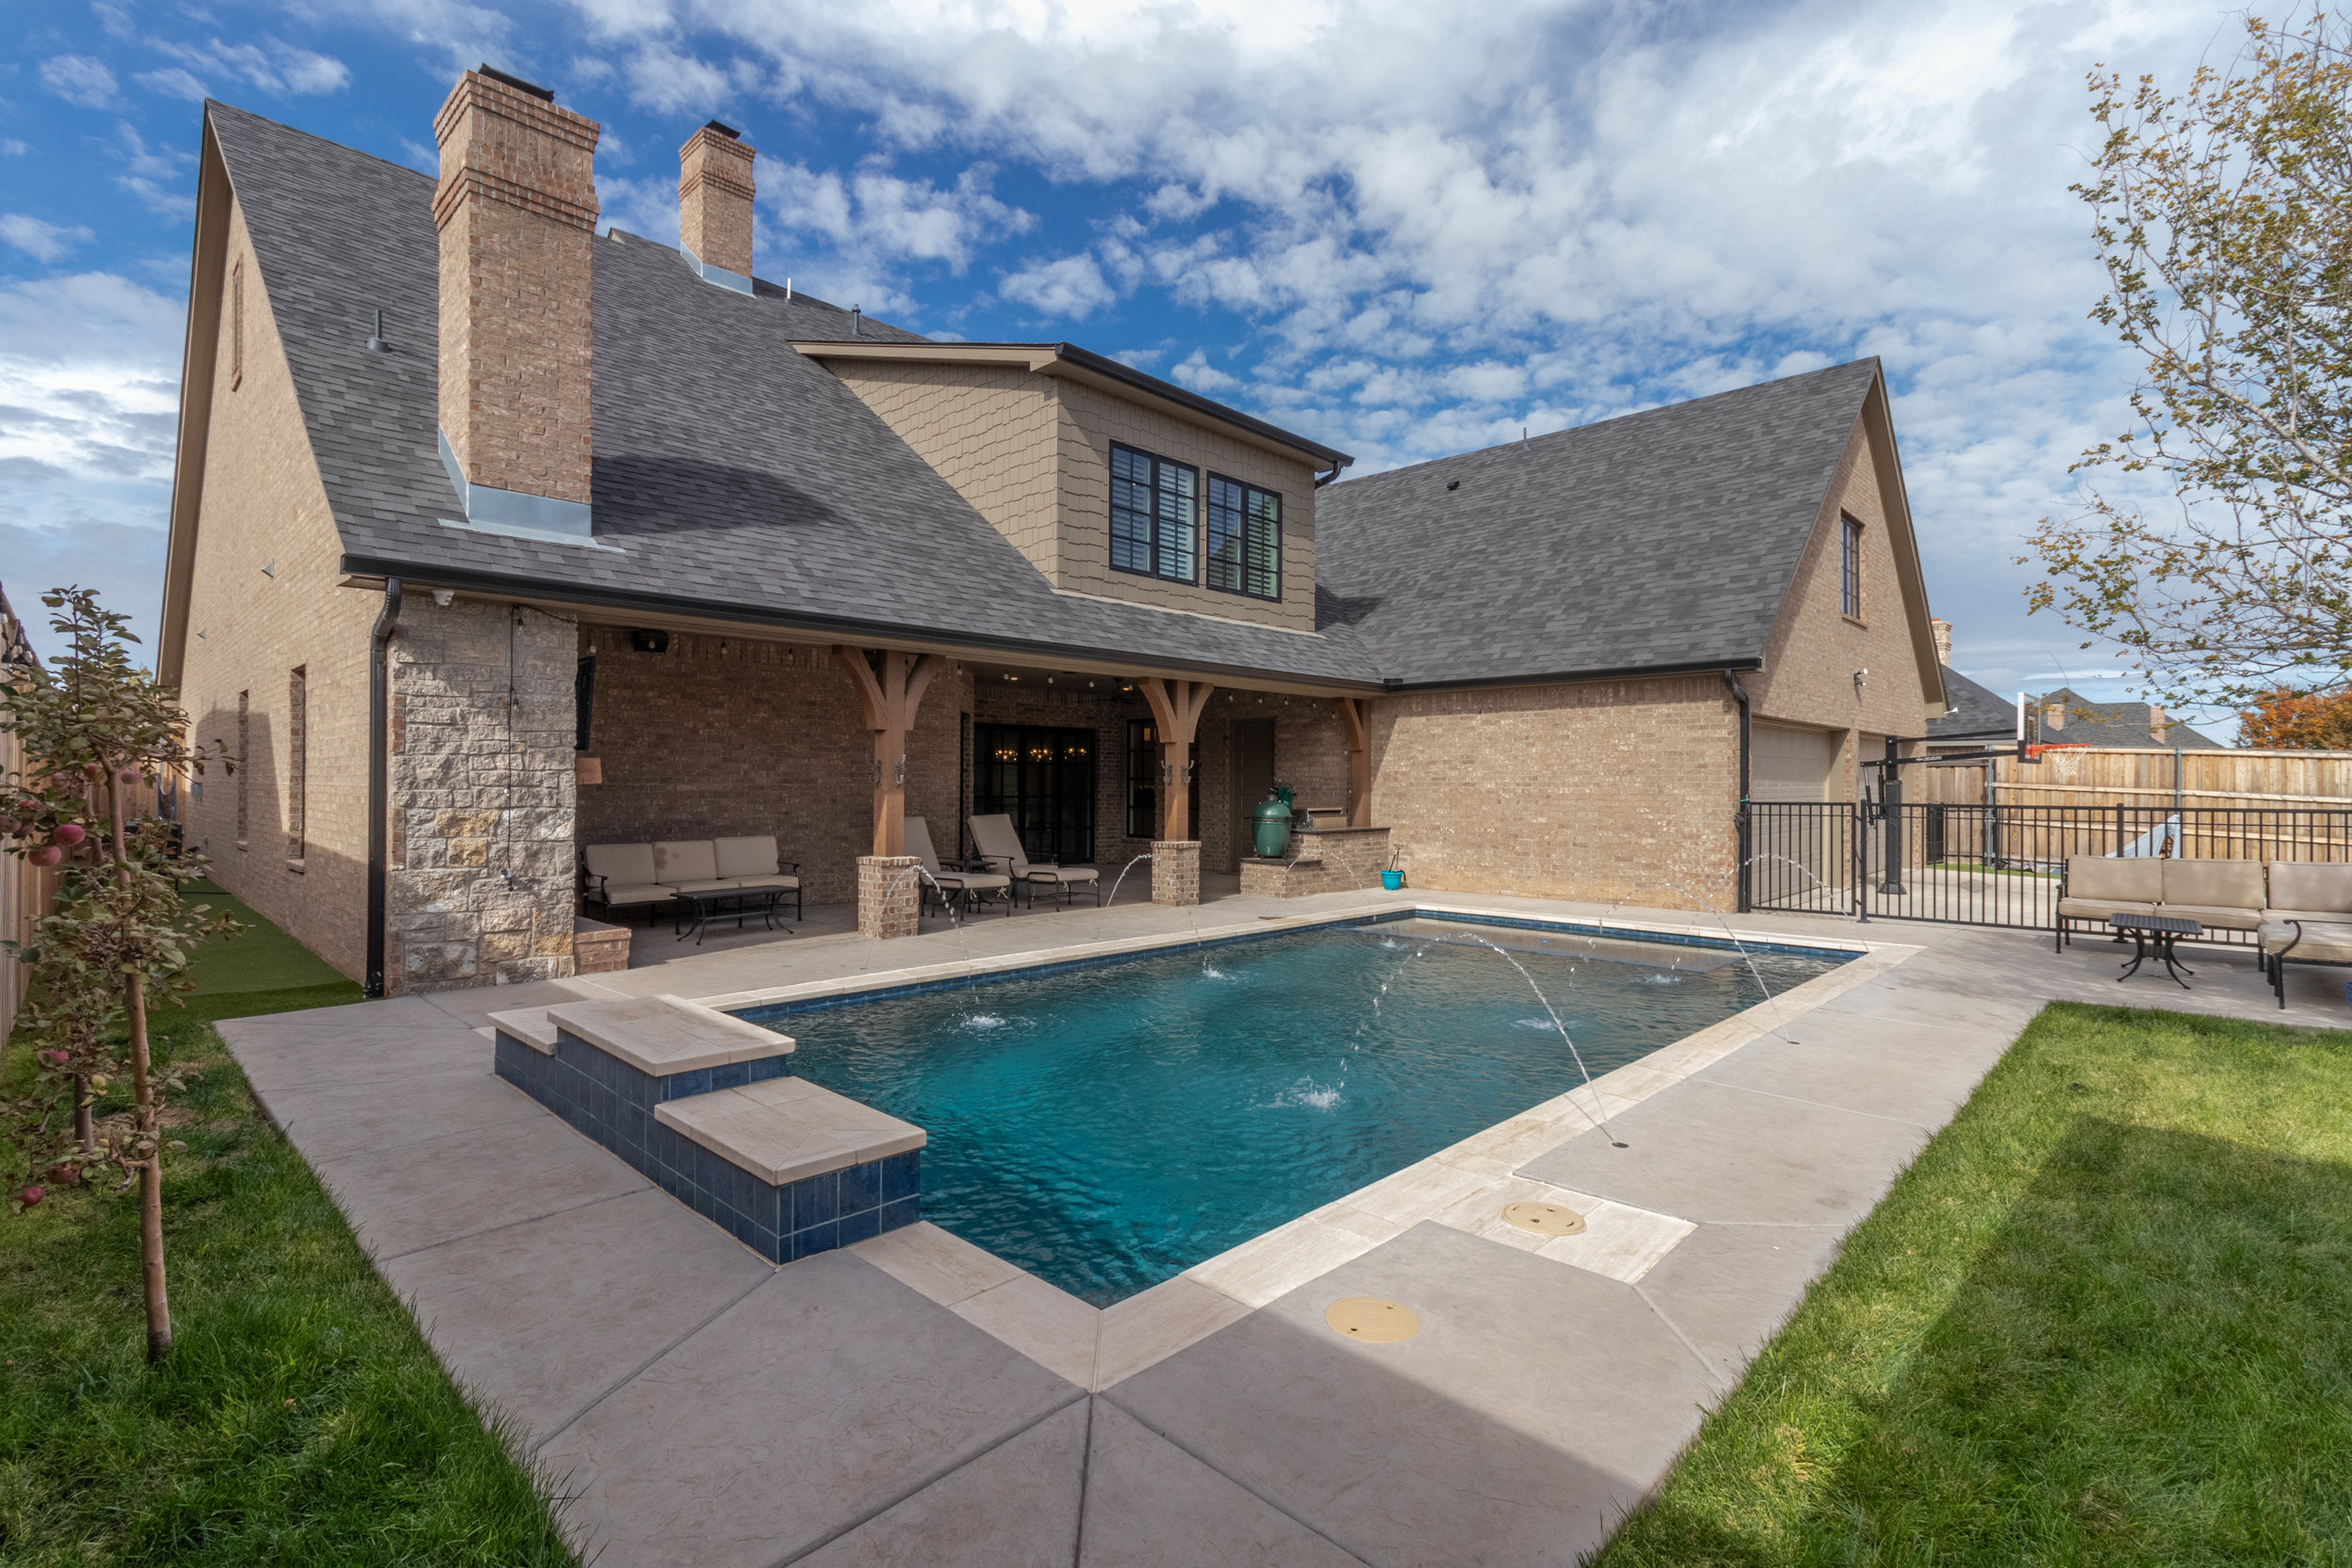 Pool and patio-3.jpg